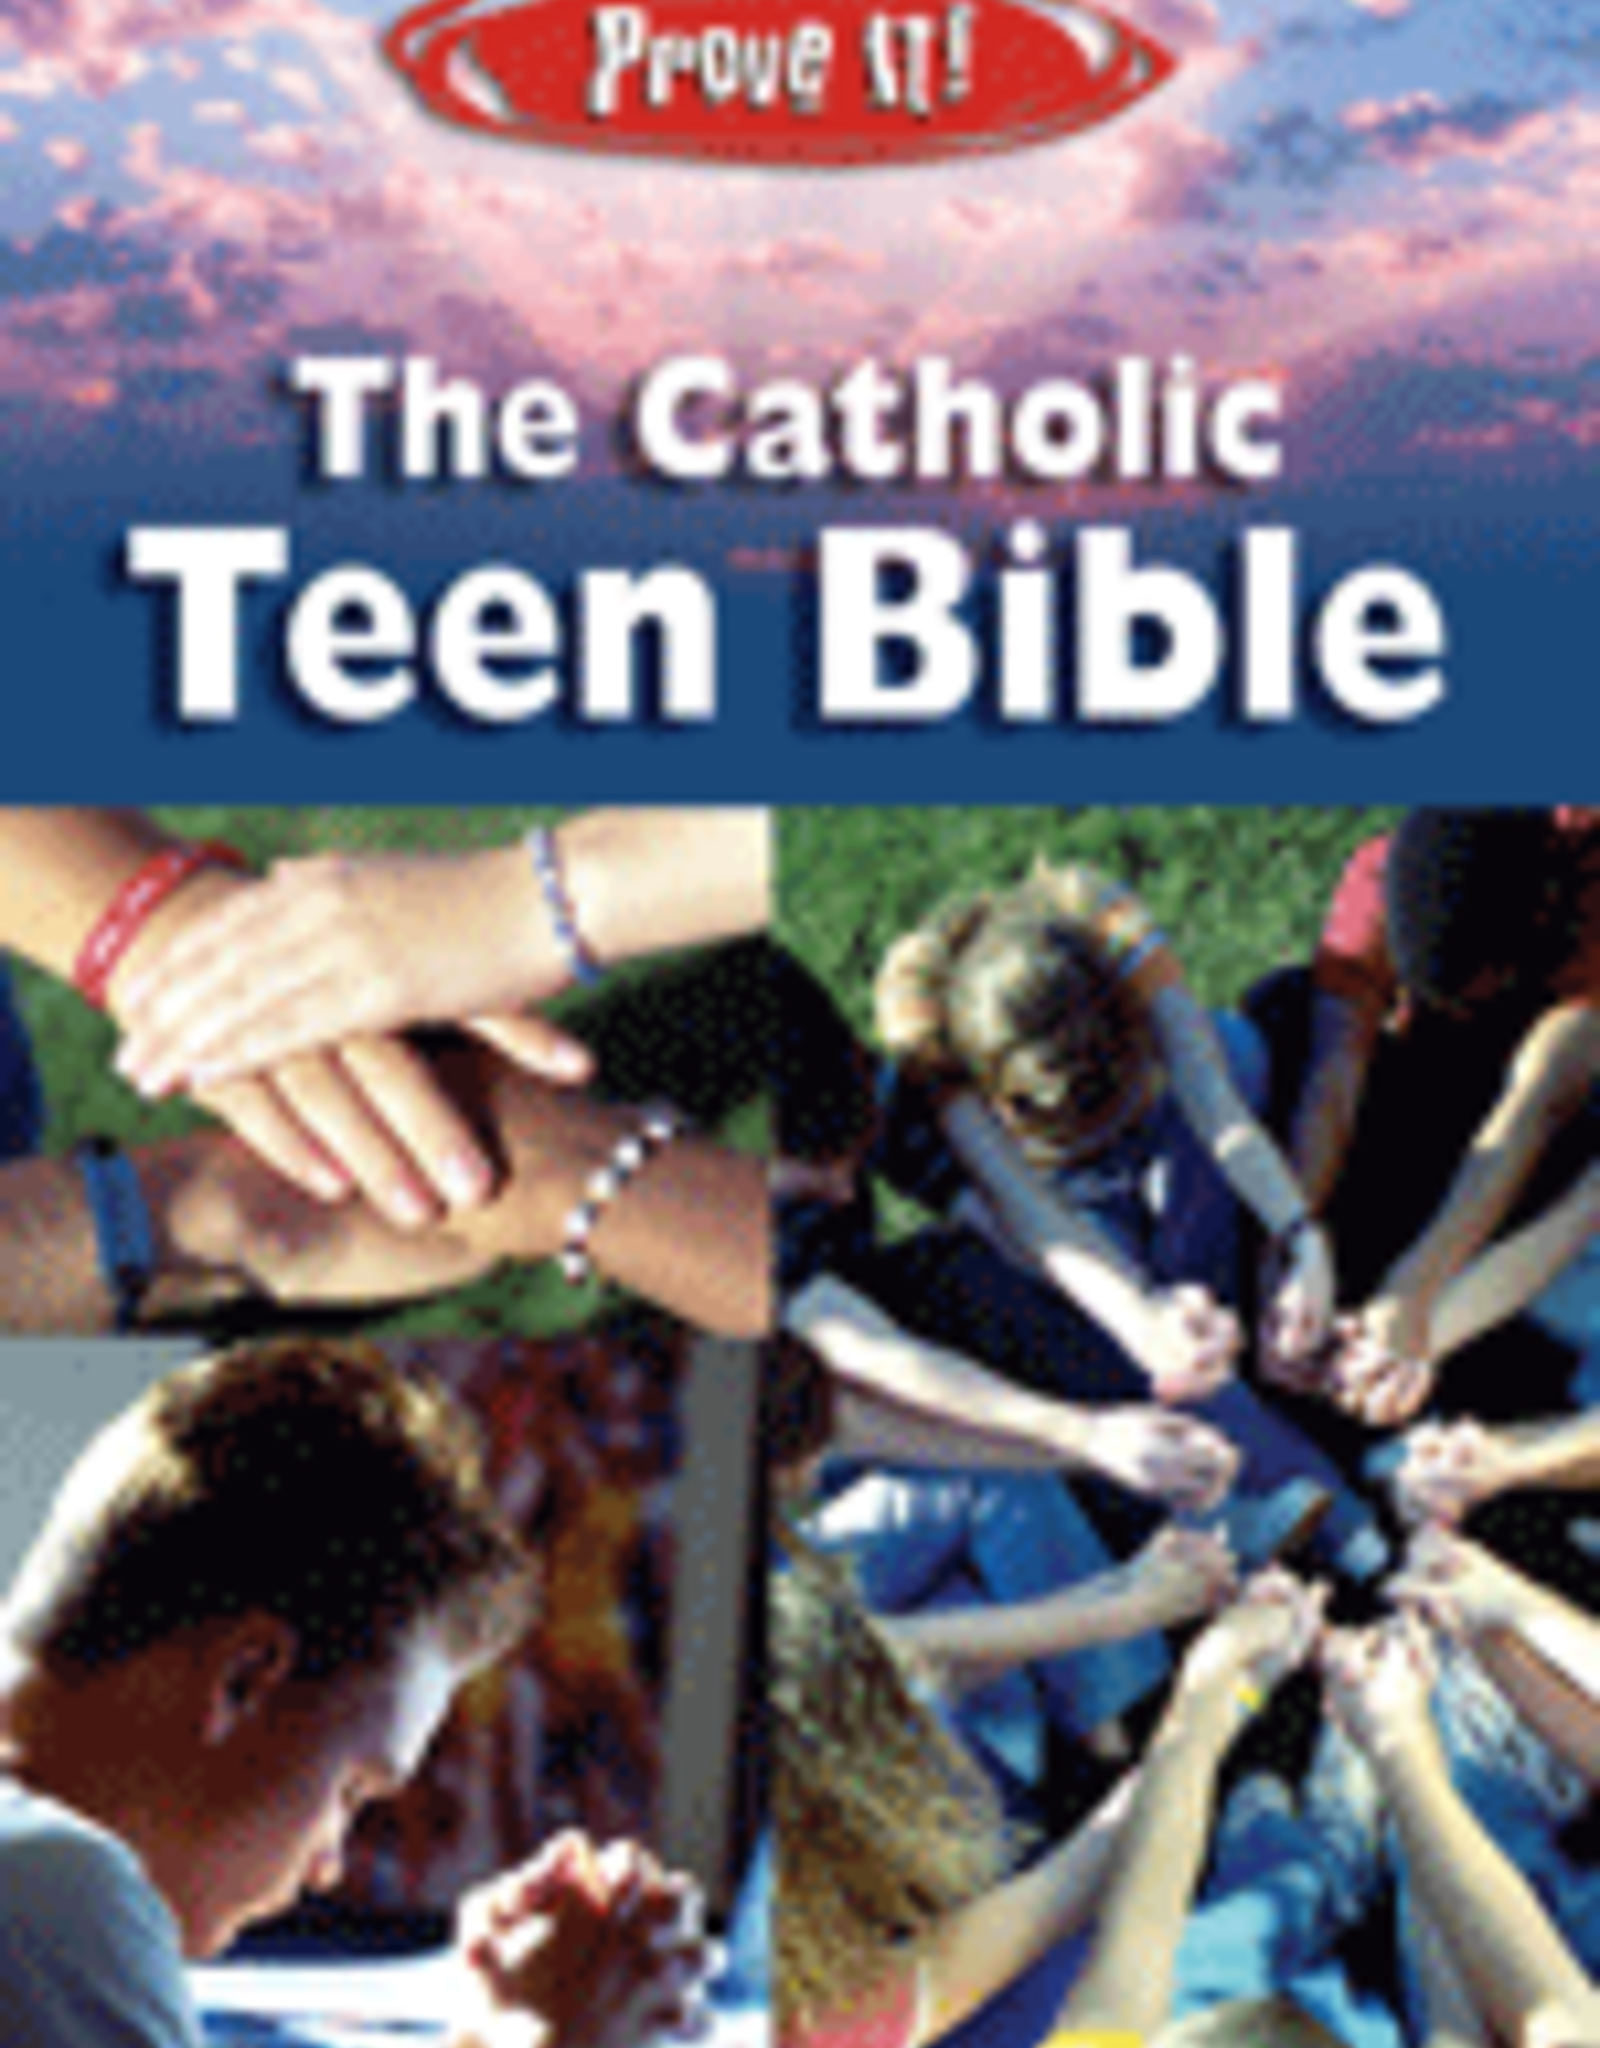 Our Sunday Visitor Prove It! The Catholic Teen Bible, Revised NAB Edition, by Amy Welborn